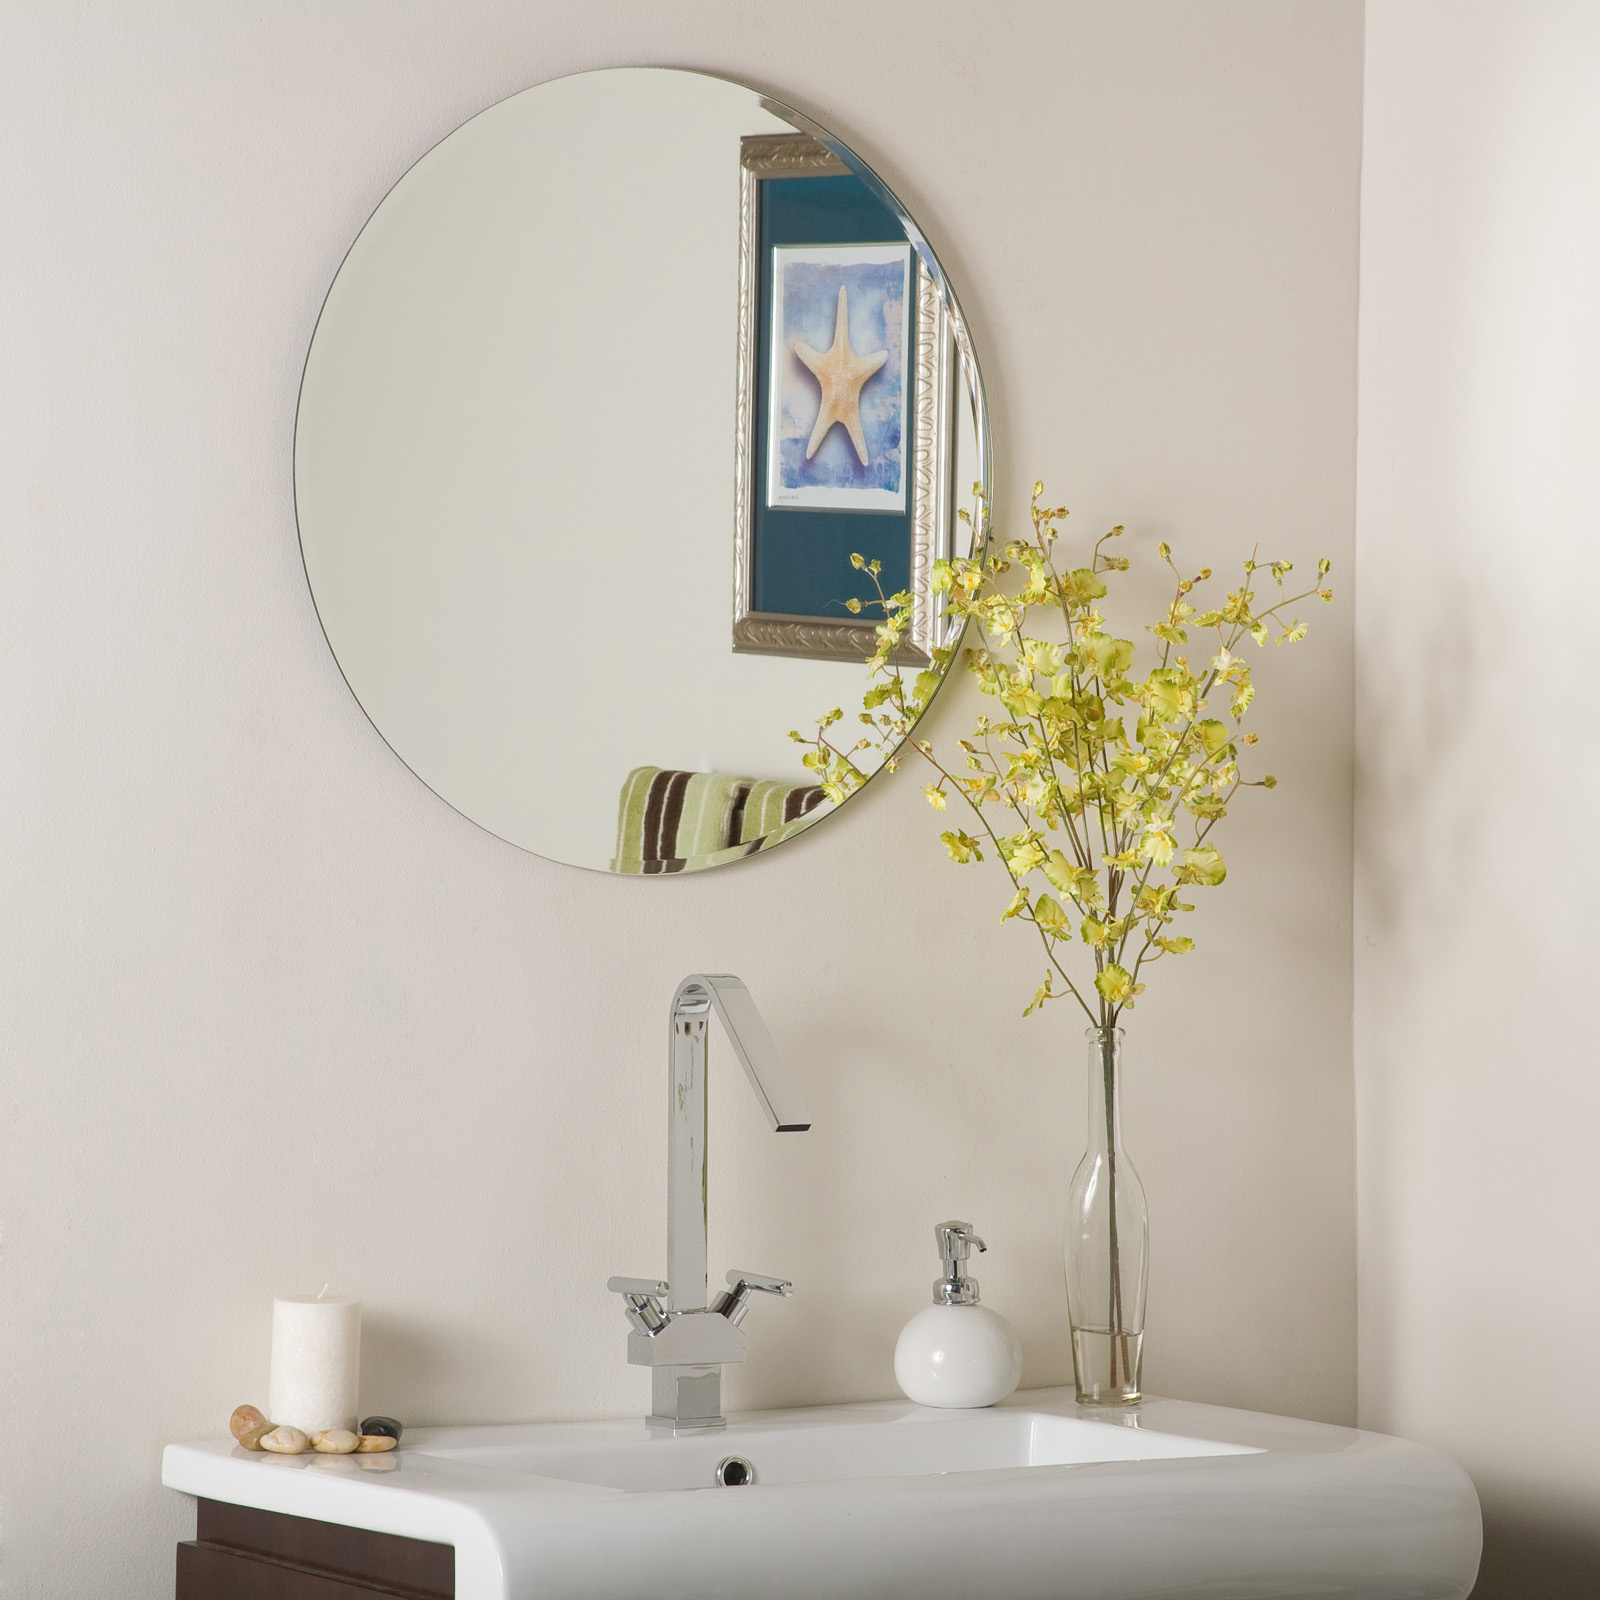 Bathroom Mirrors Frameless Beveled frameless rectangular bathroom mirror. view larger image. stylish